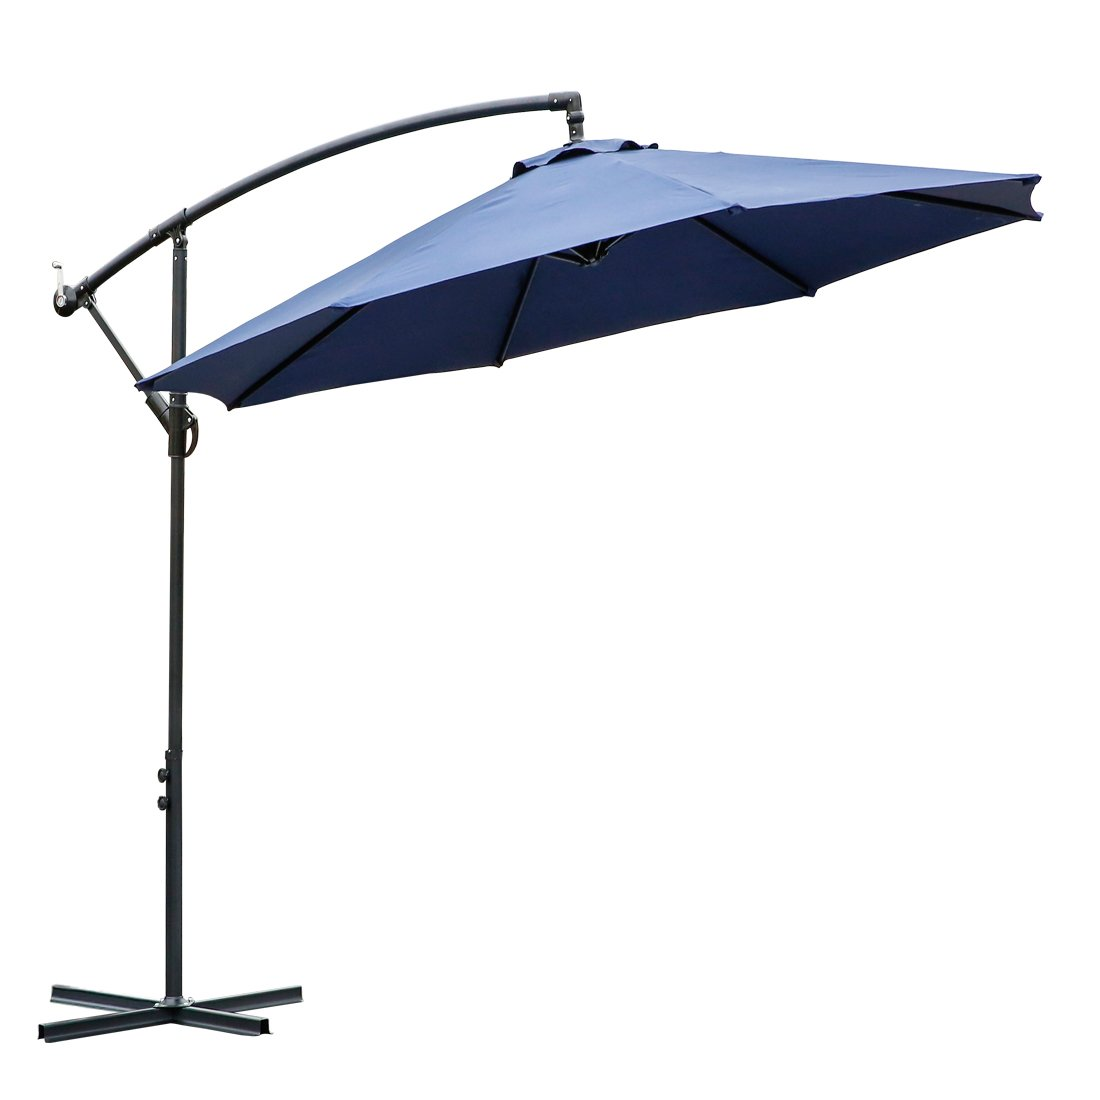 10 ft offset cantilever patio umbrella outdoor market hanging umbrellas & crank with cross base , 8 ribs (10 ft, Dark blue)